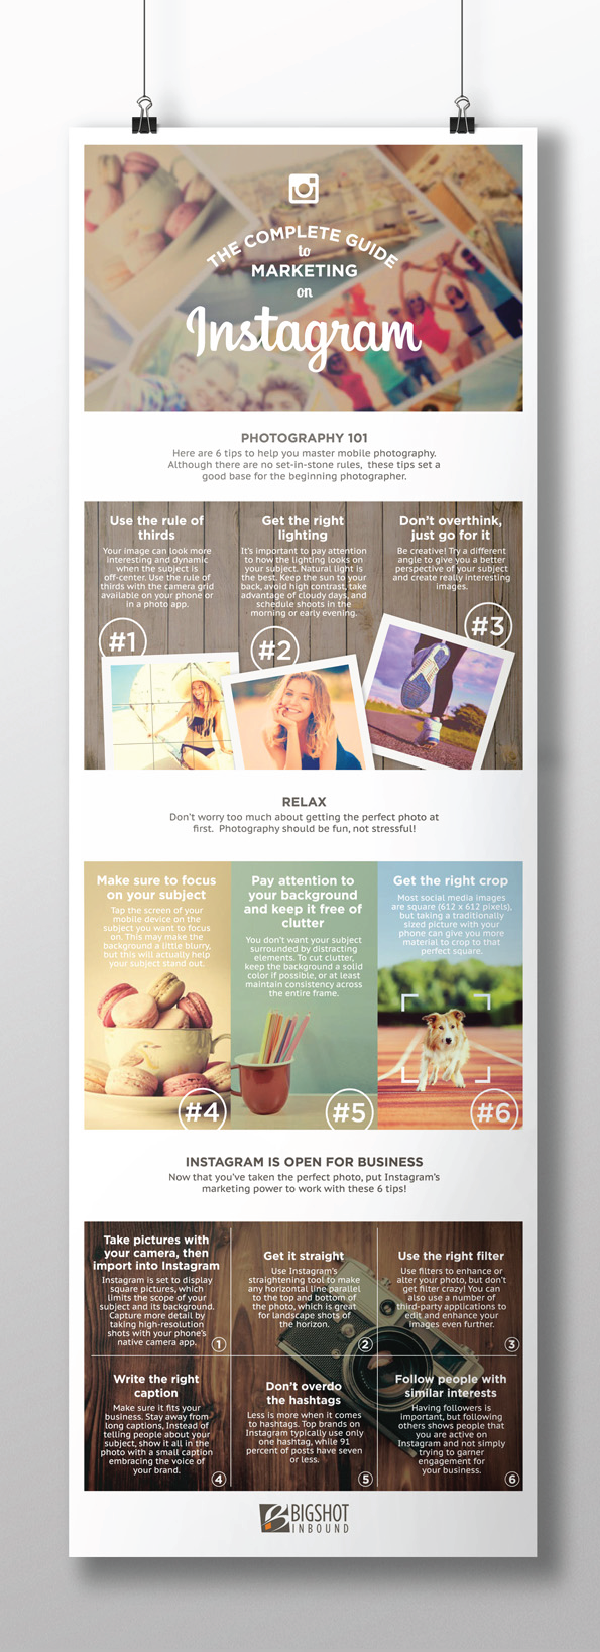 info graphic information infographic instagram photograph photo background image vector illustrations social media marketing   mobile